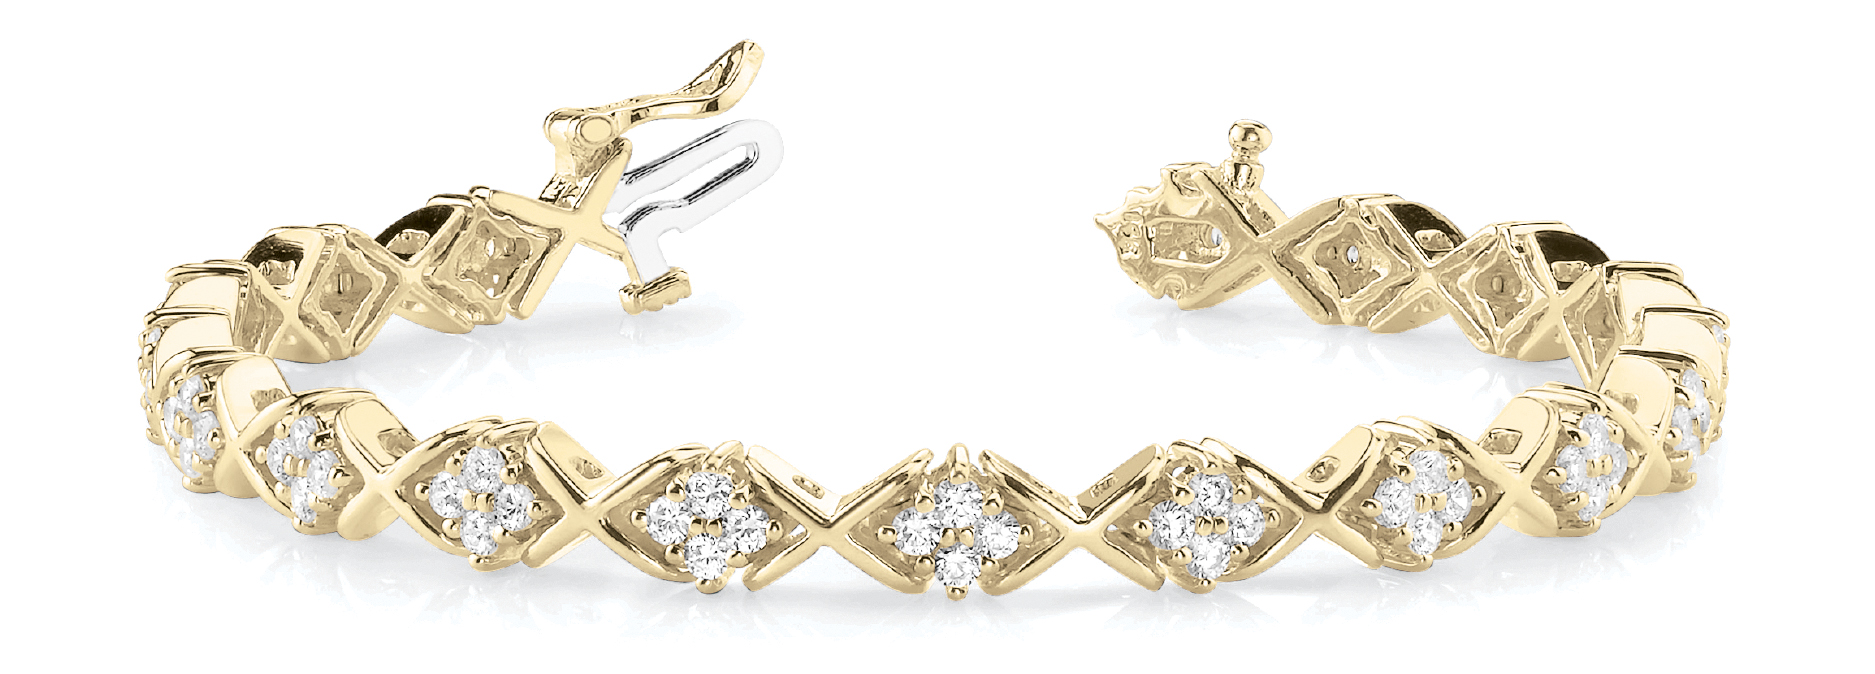 2.16 Carat Round Diamond Cluster XO Bracelet Yellow Gold